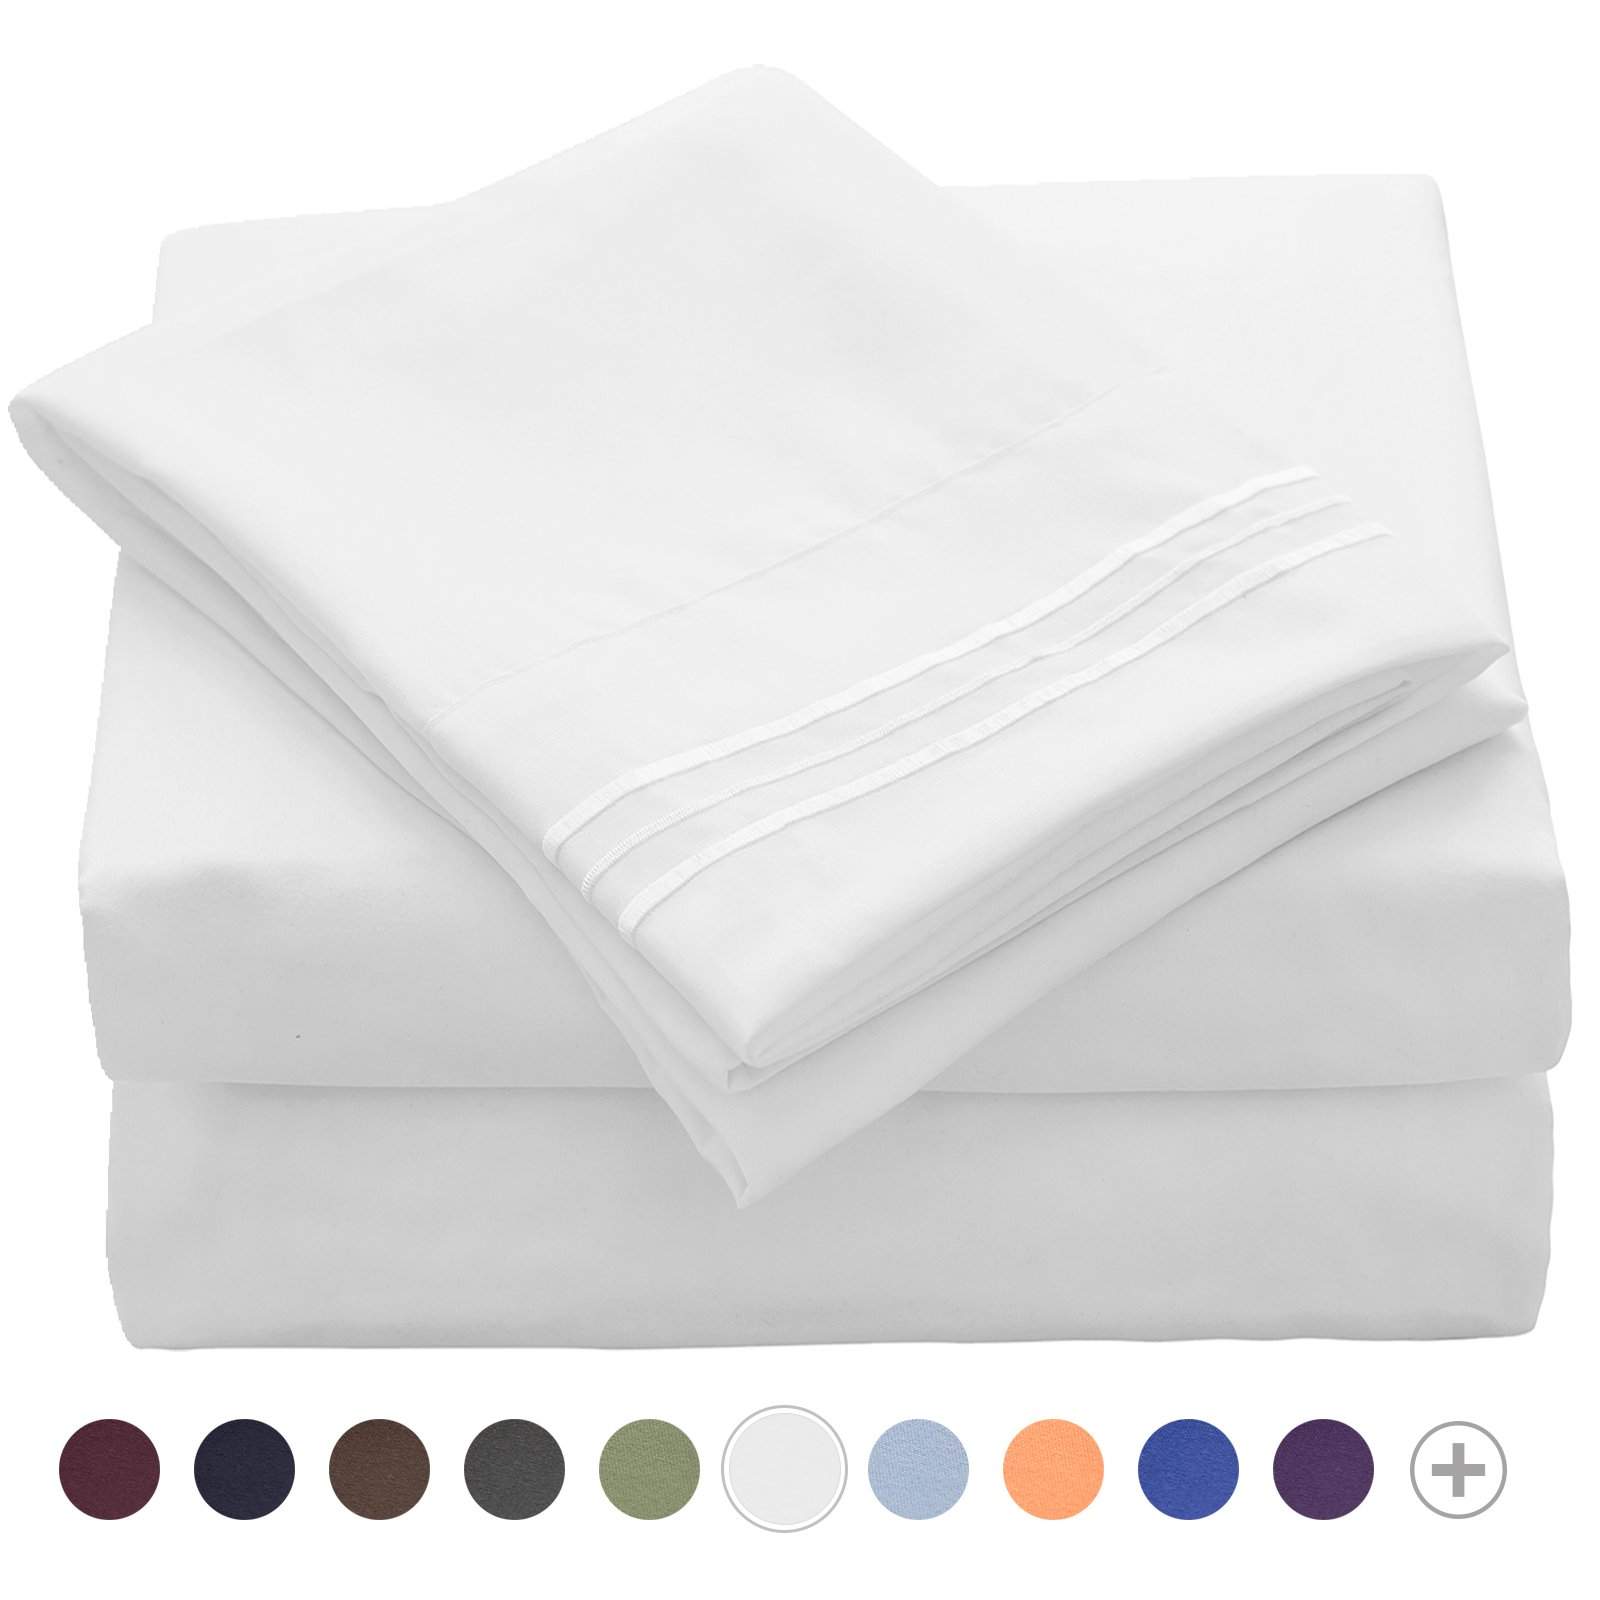 VEEYOO Bedding Sets White Twin XL - Luxury Hotel Quality 1800 Thread Count Microfiber Bed Sheet Set - Wrinkle, Fade, Stain Resistant Hypoallergenic Extra Soft Twin XL Sheet Sets, 3 Pieces